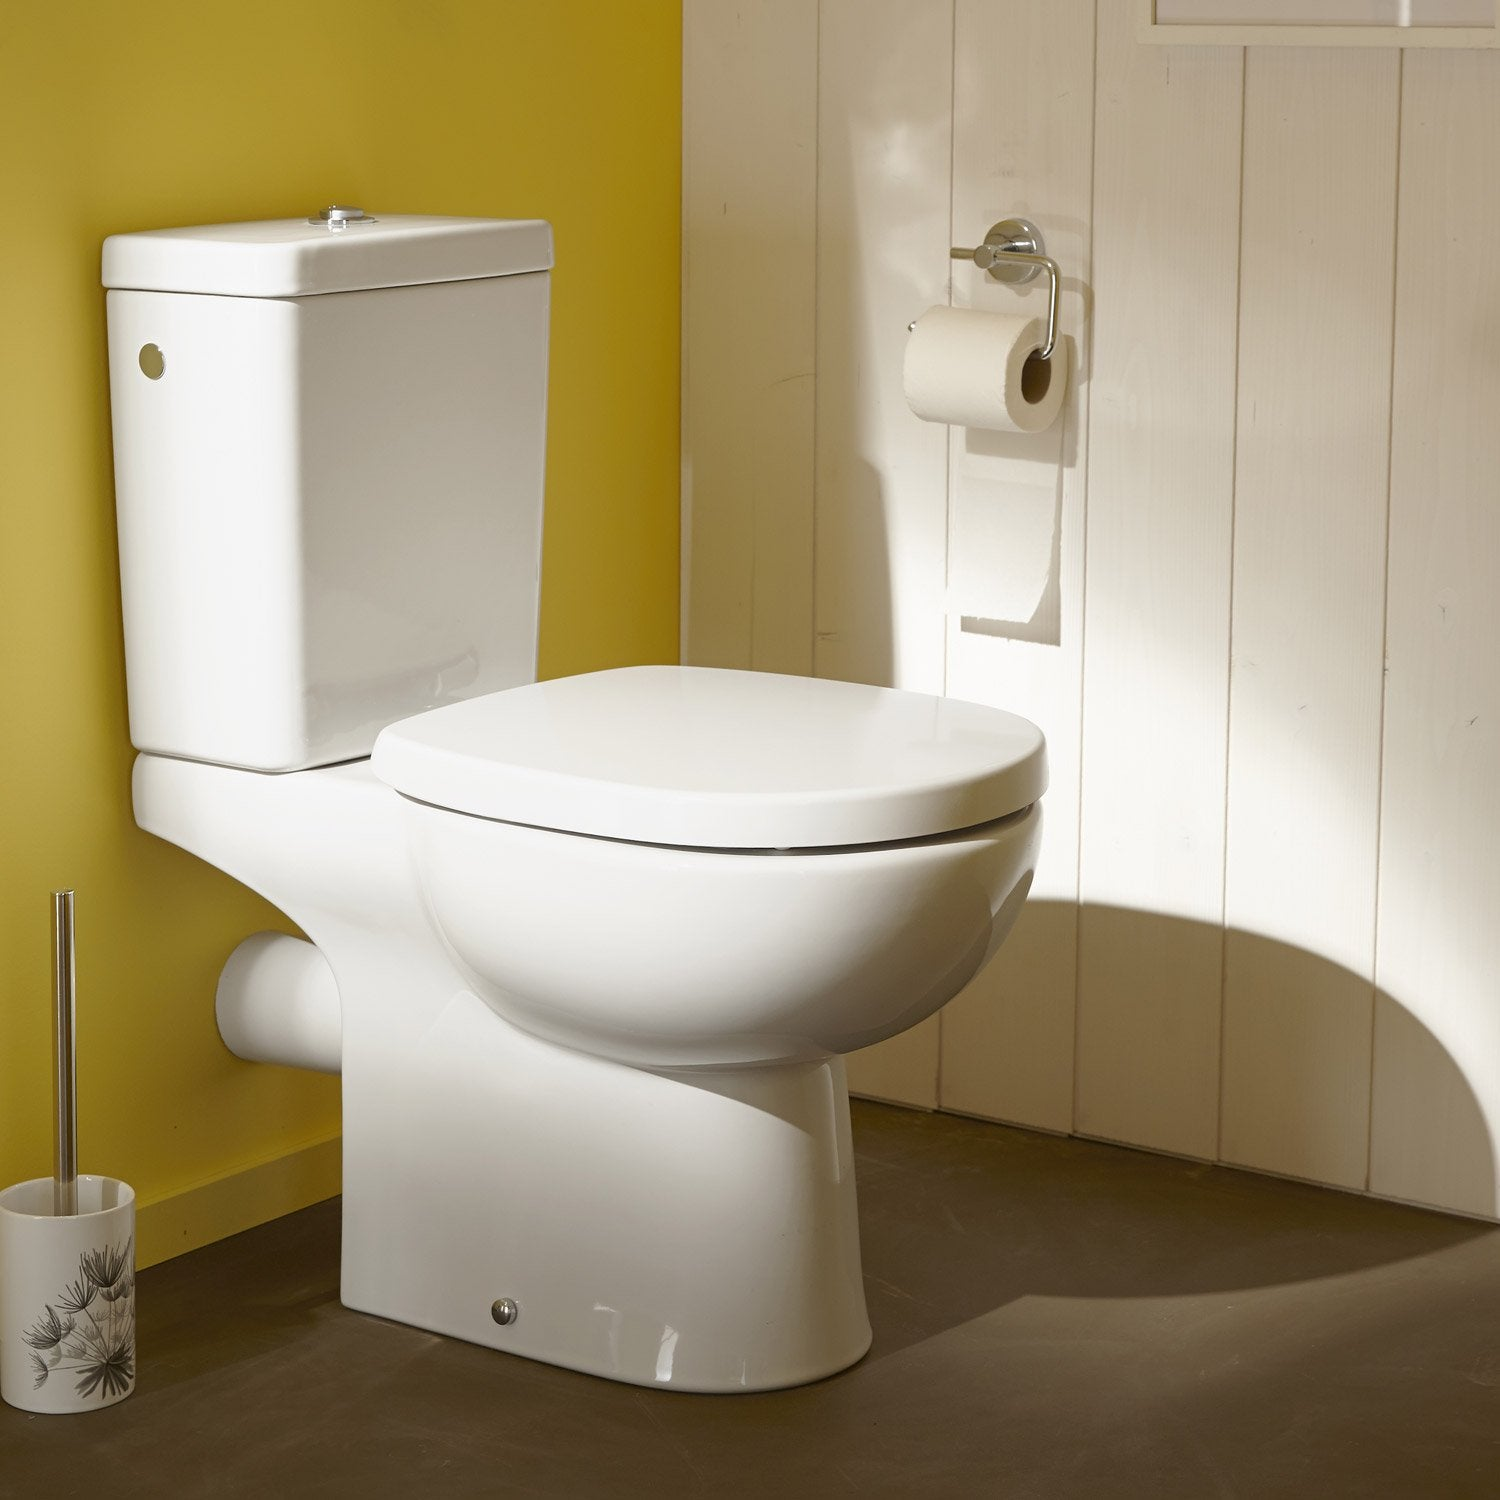 Deco wc leroy merlin for Deboucher wc produit naturel